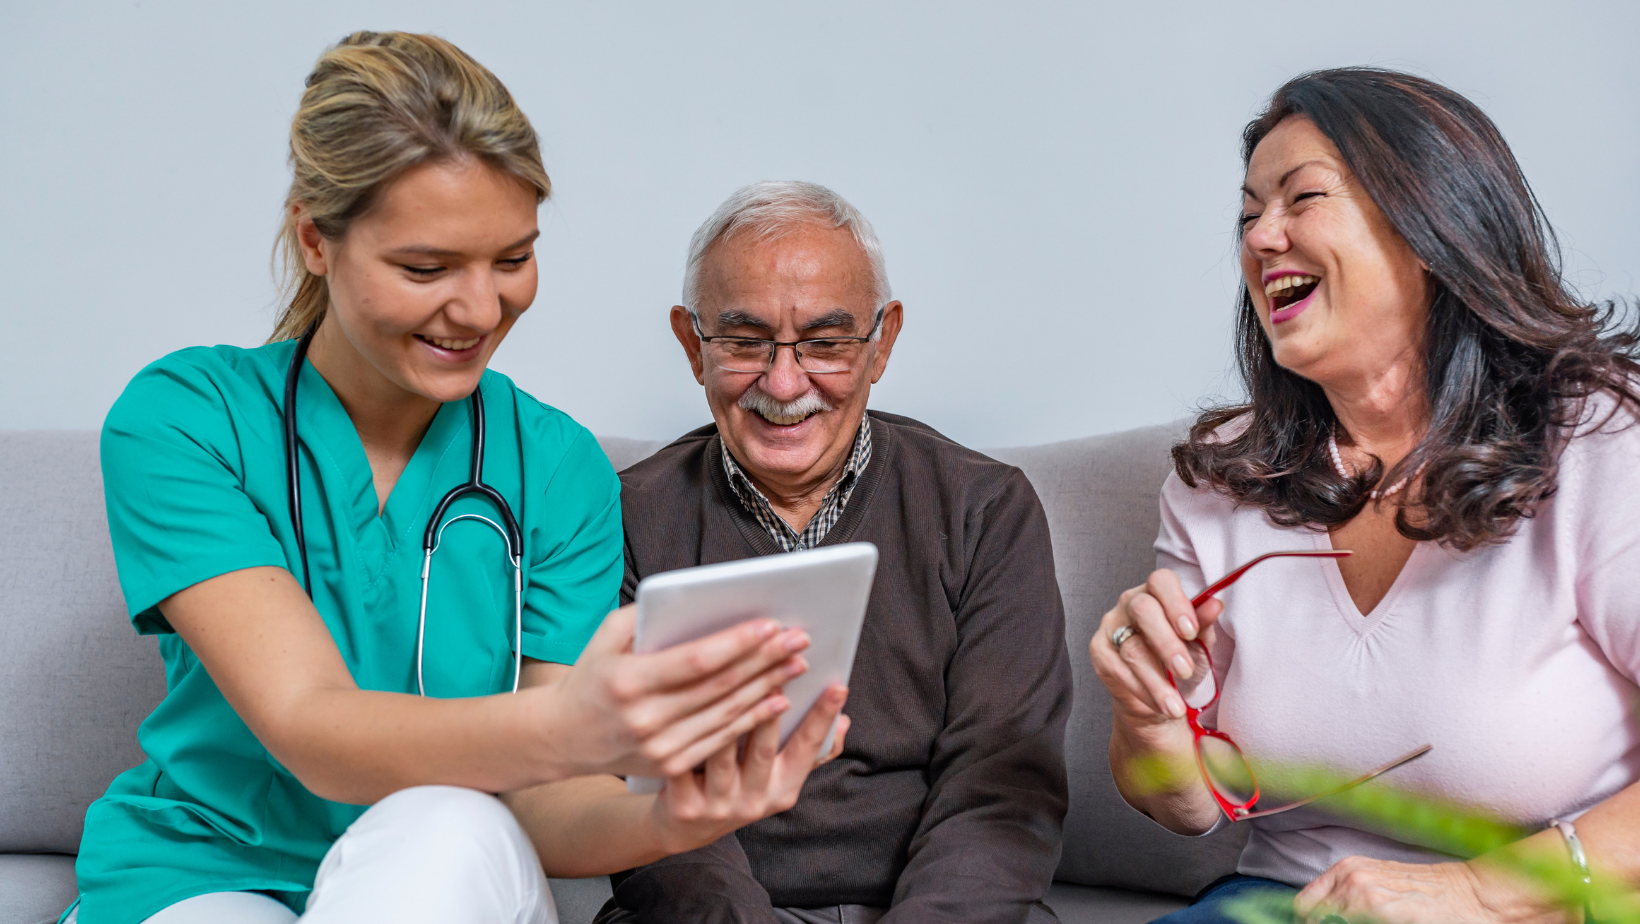 Using Care Management Systems to Connect With Resident Families